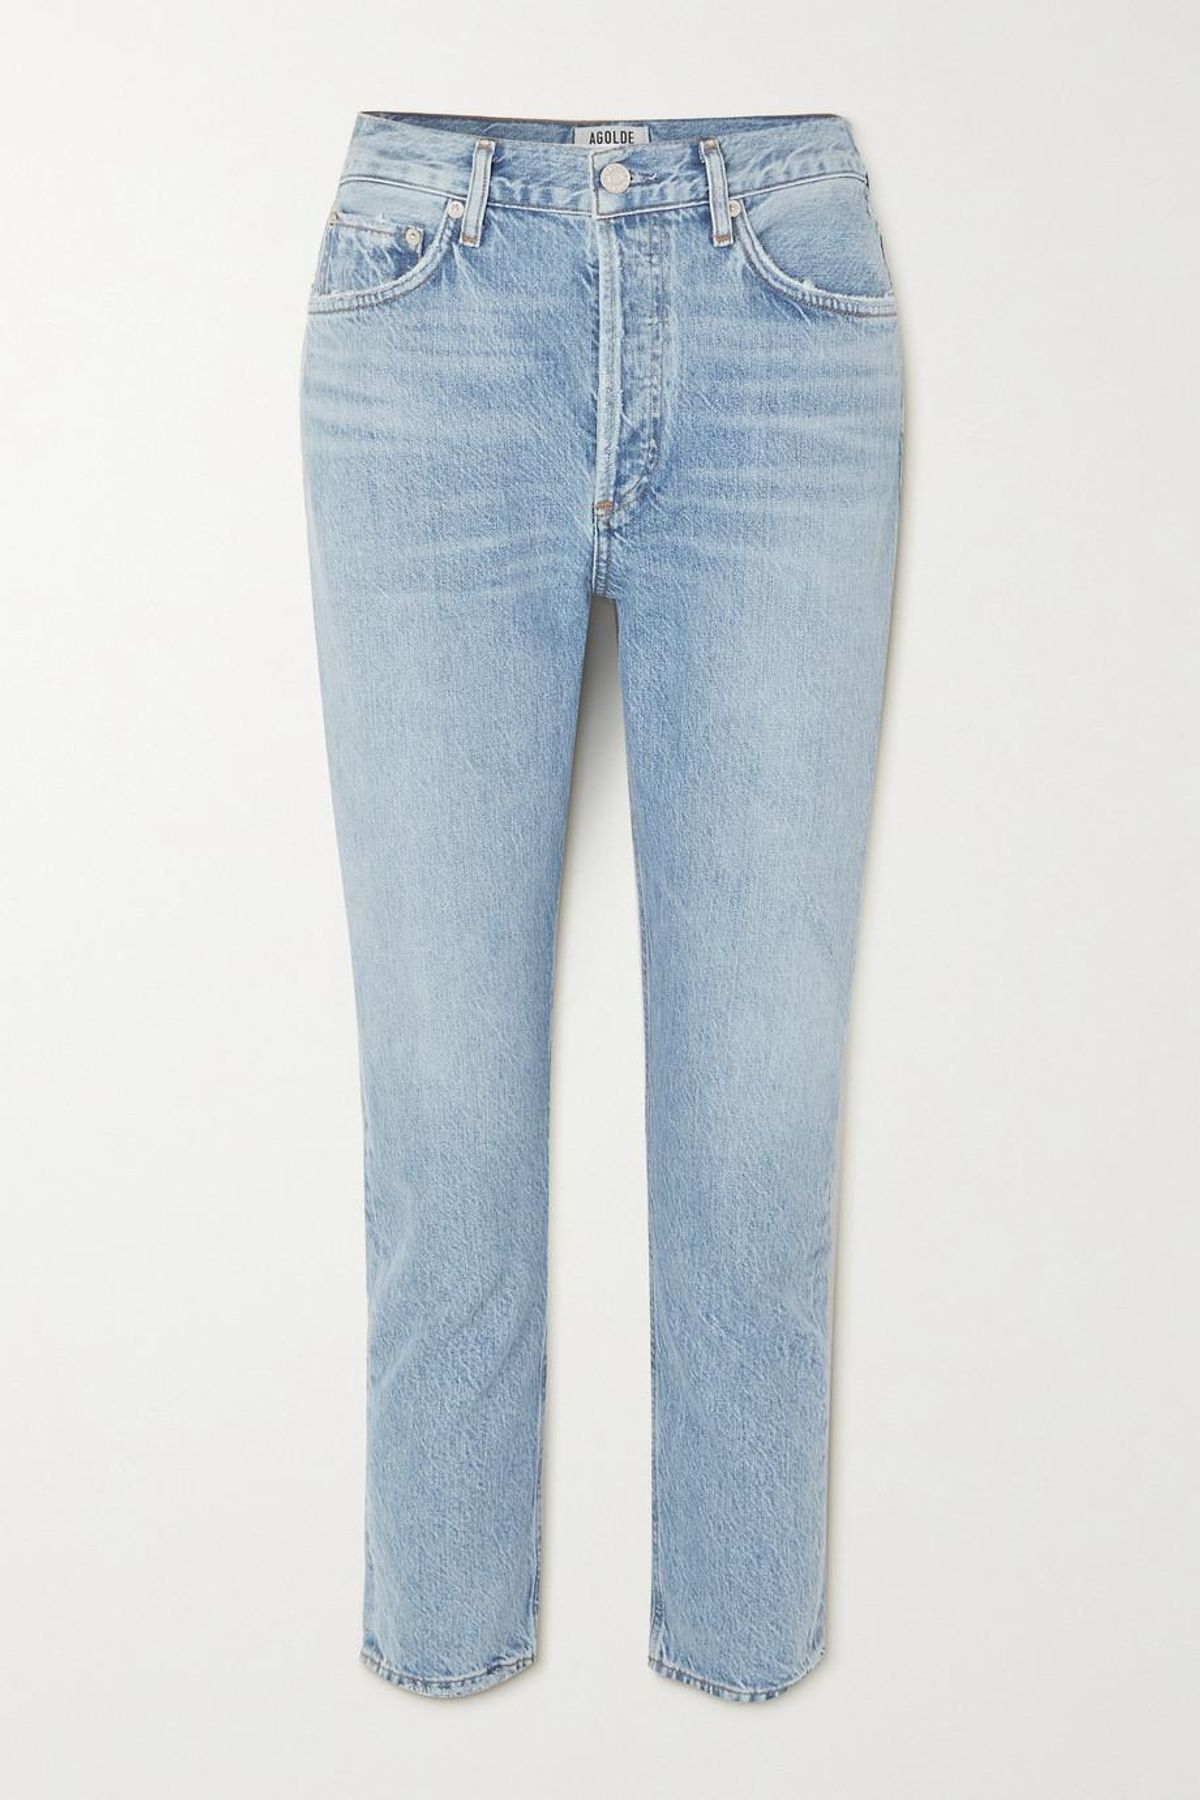 Riley Cropped Organic High Rise Straight Leg Jeans